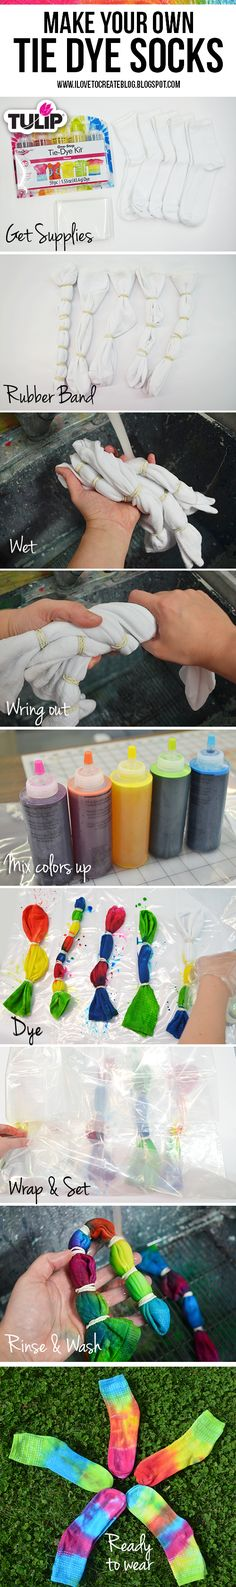 YOUR KIDS WILL GO CRAZY OVER THIS!!! Make your own tie dye socks with Tulip One-Step Tie-Dye! #diy